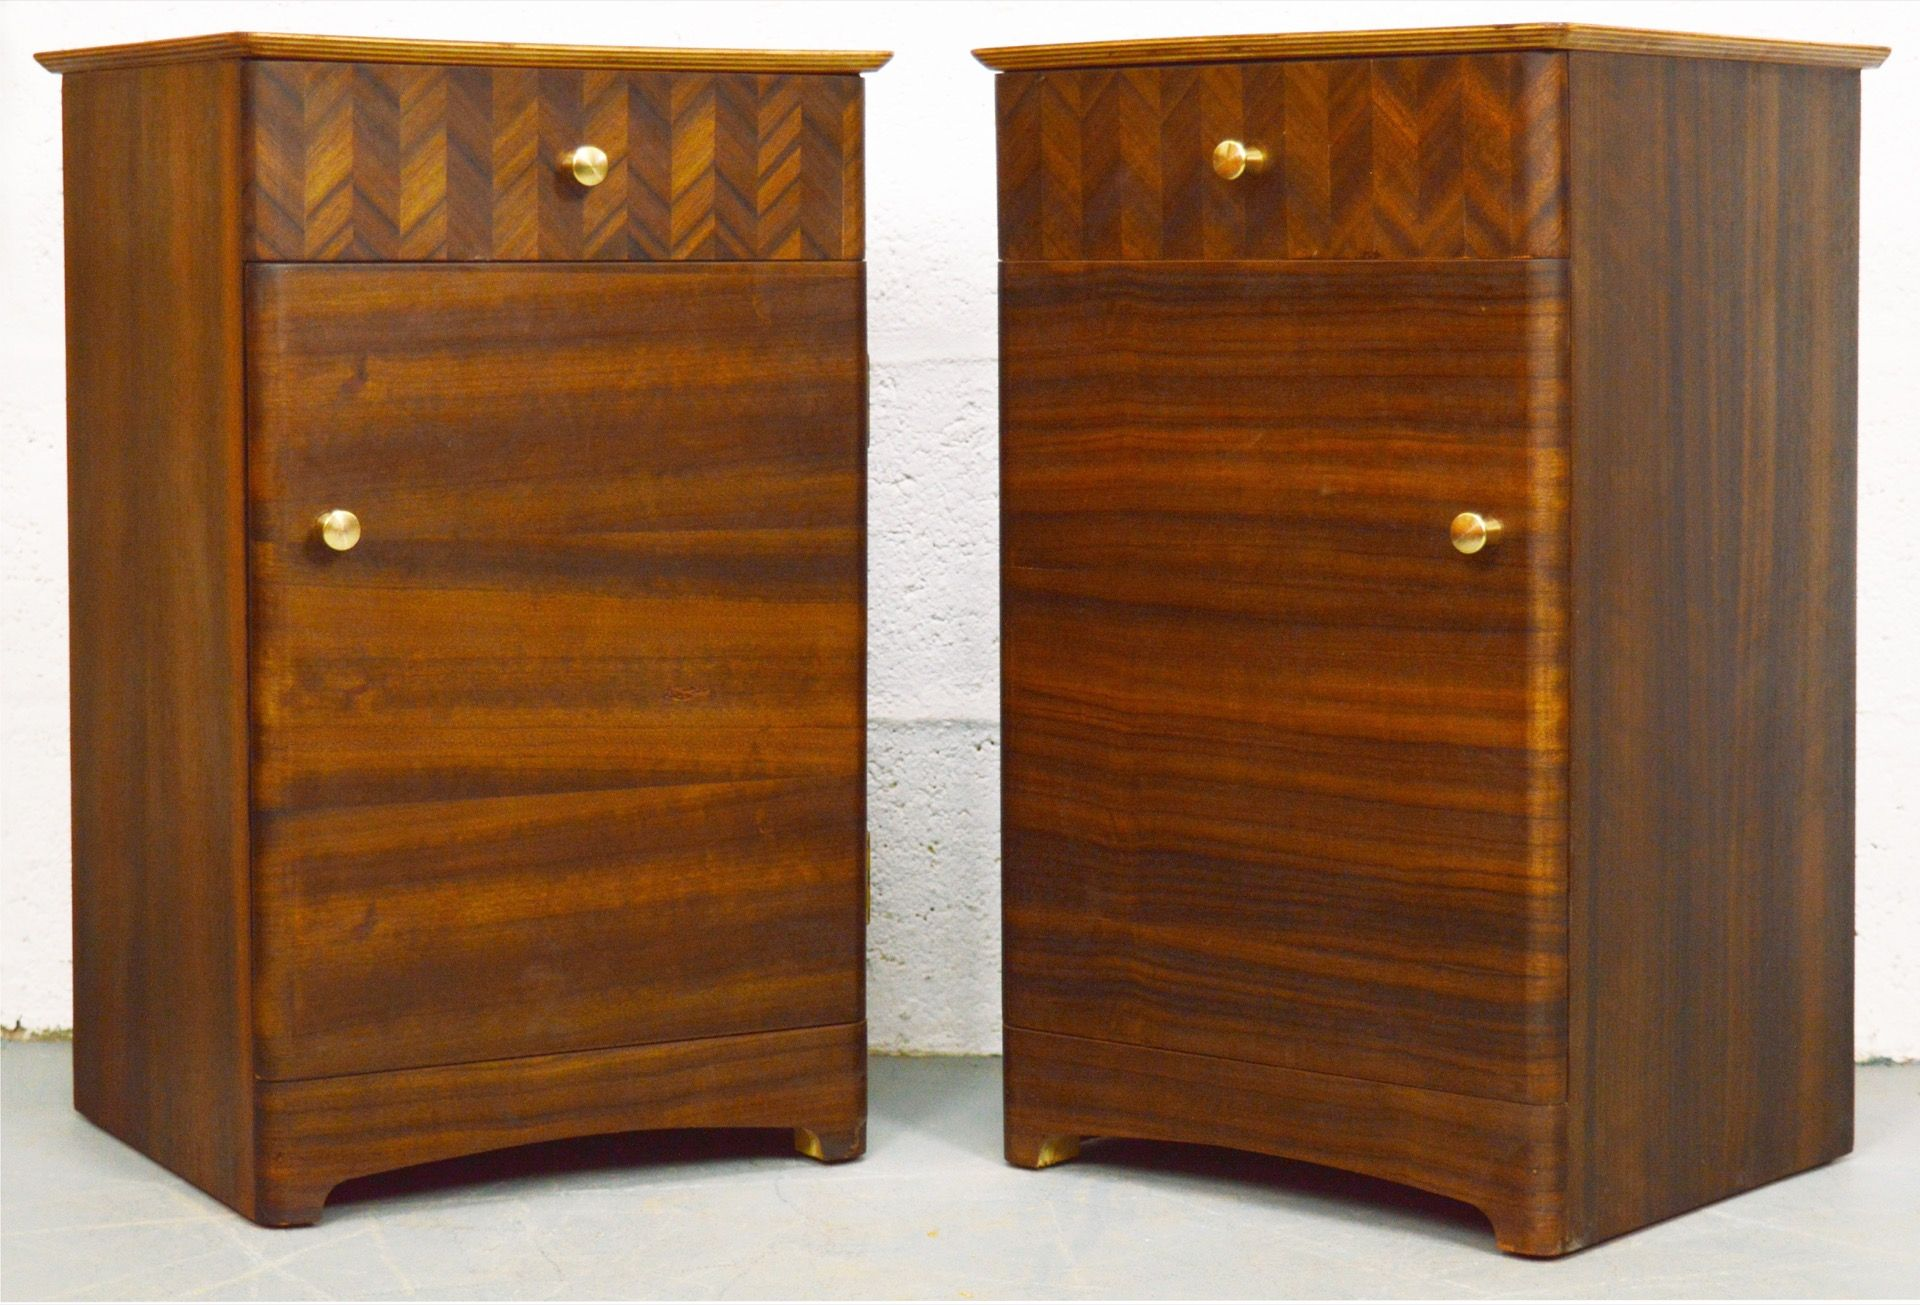 Best Mid Century Walnut Uniflex Bedside Cabinets With Images 400 x 300